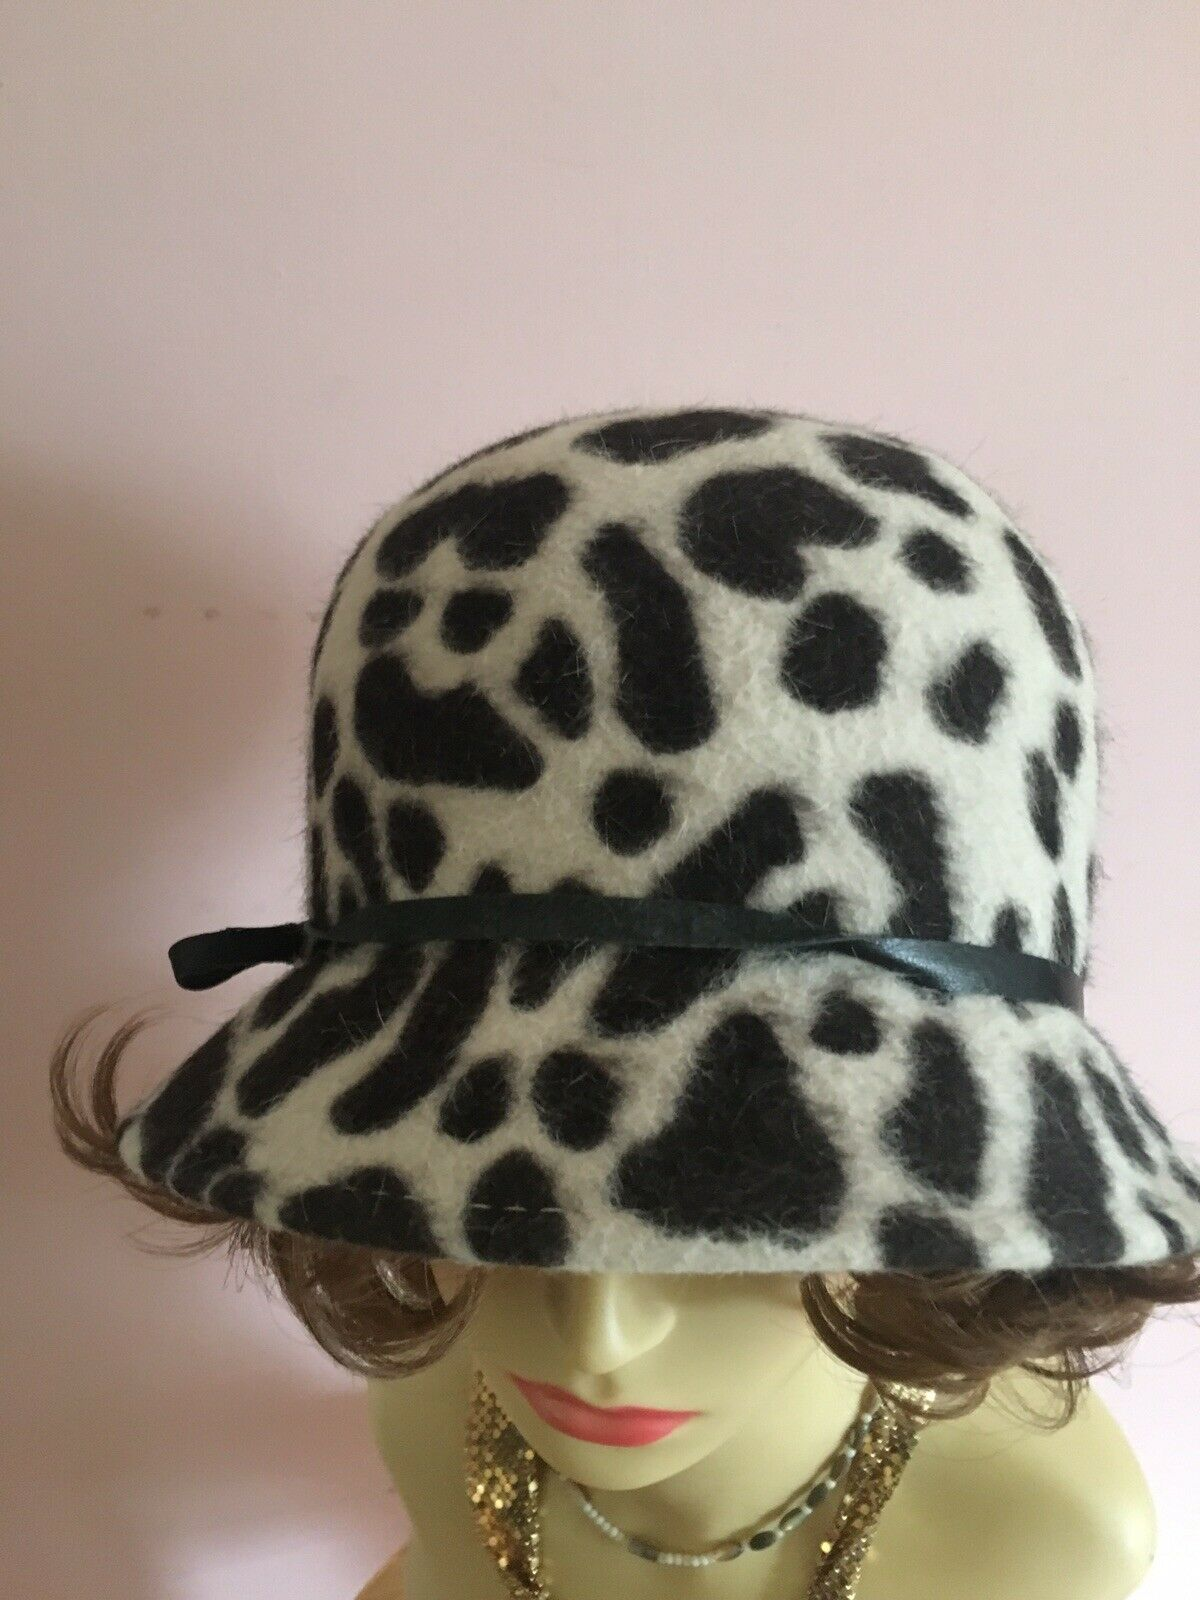 Vintage Rabbit Fur Cloche Hat Made In Italy Faux Leopard print by Lord & Taylor